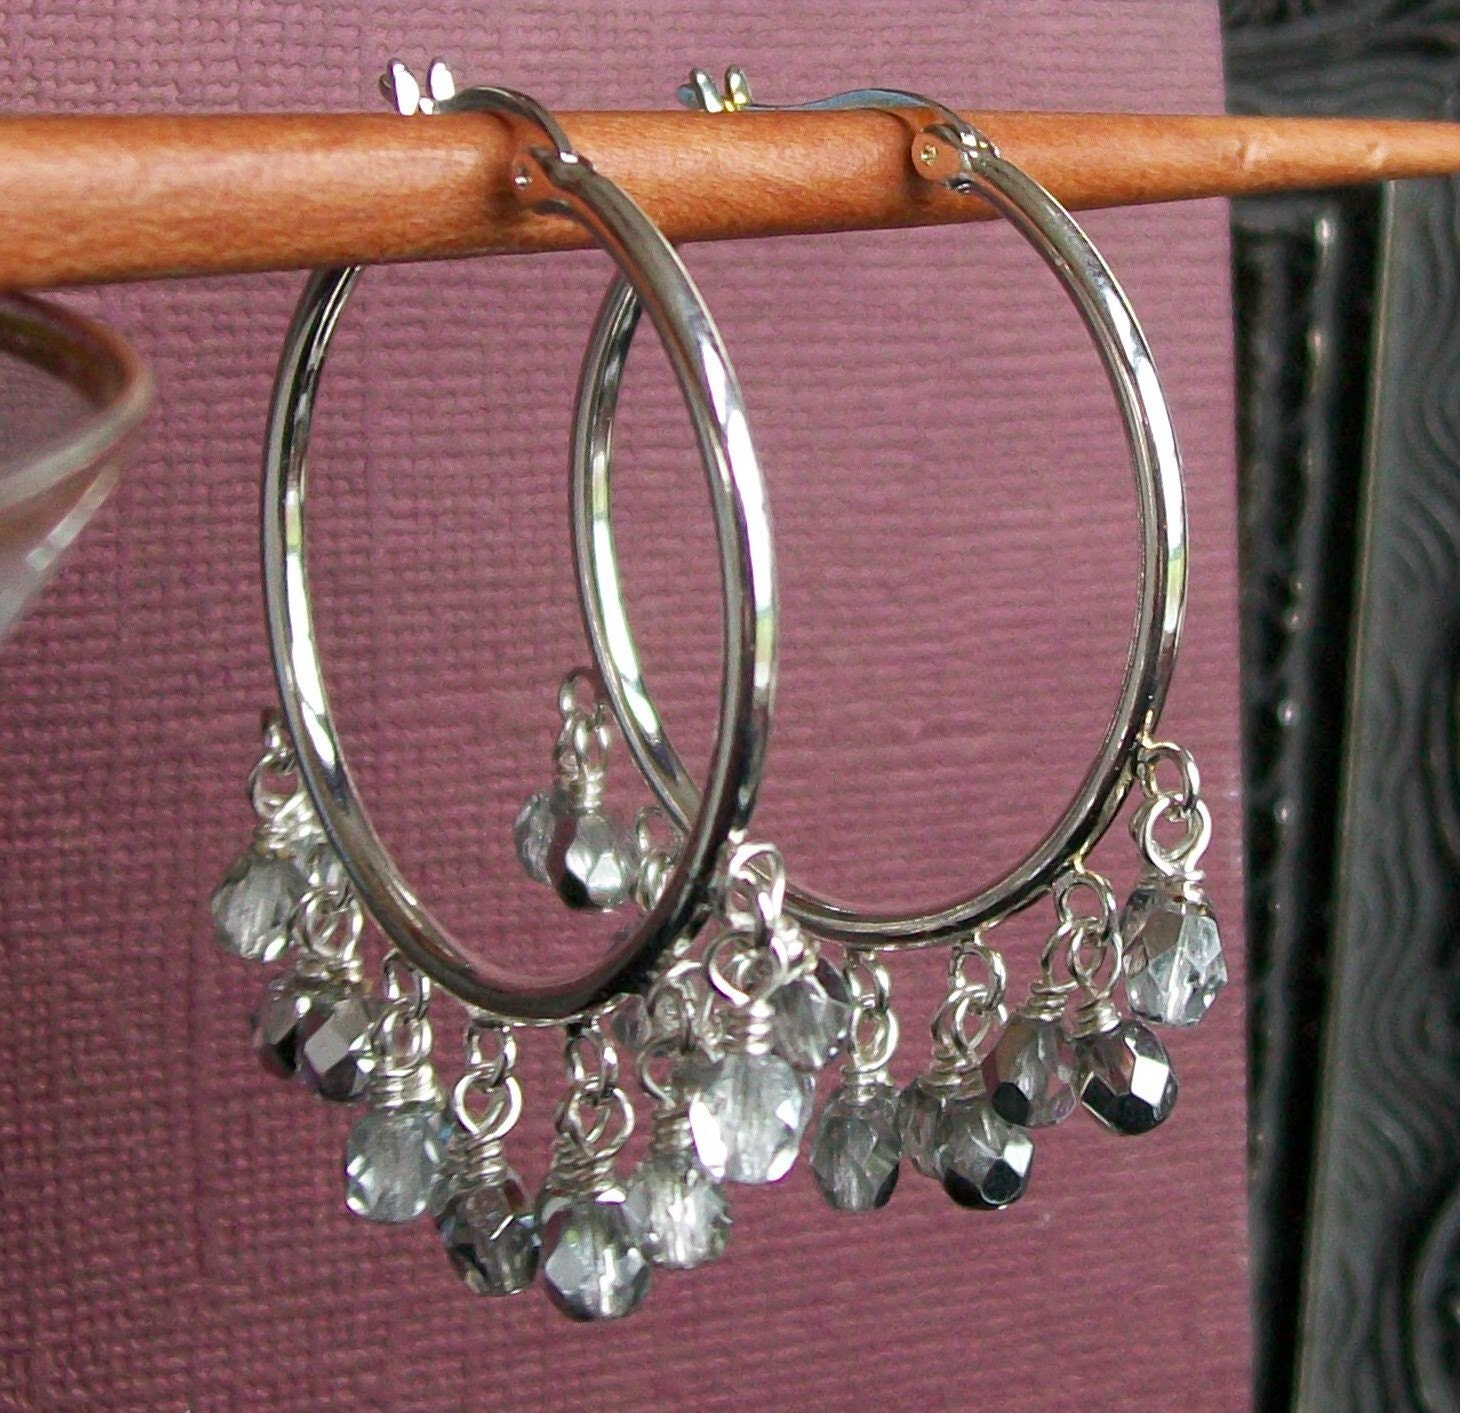 Crystal and Silver Cha Cha Hoop Earrings by shannonsroom on Etsy from etsy.com